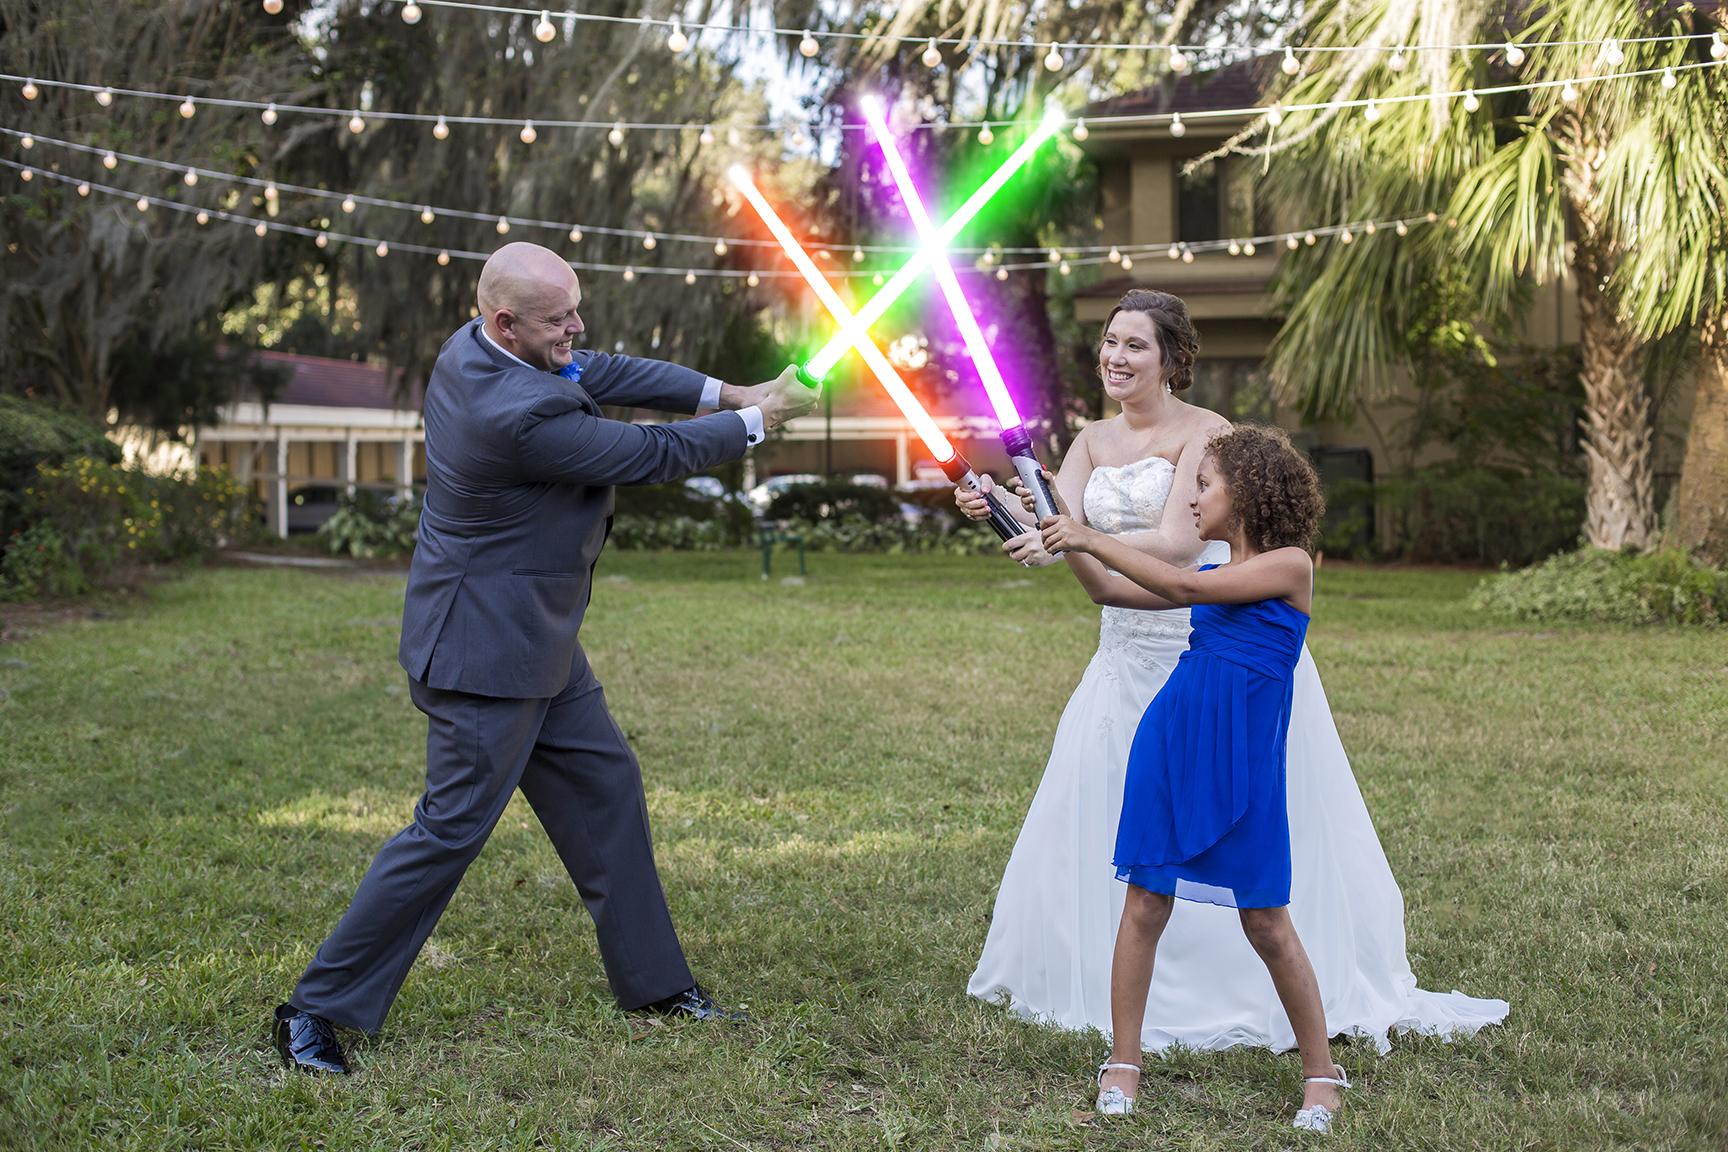 adam-szarmack-star-wars-wedding-jacksonville-photographer-33.jpg